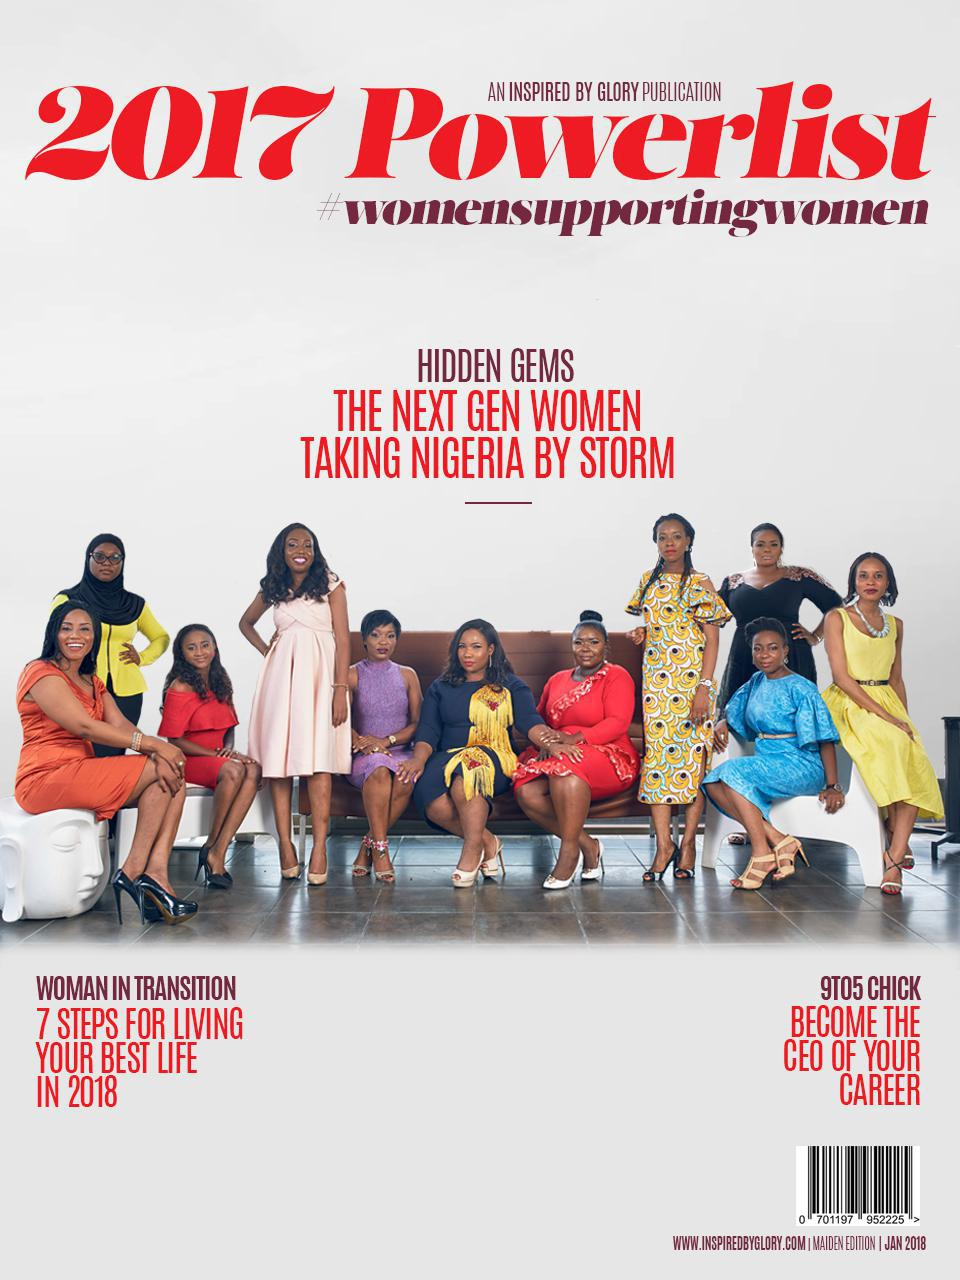 #WomenSupportingWomen the Official Power List!